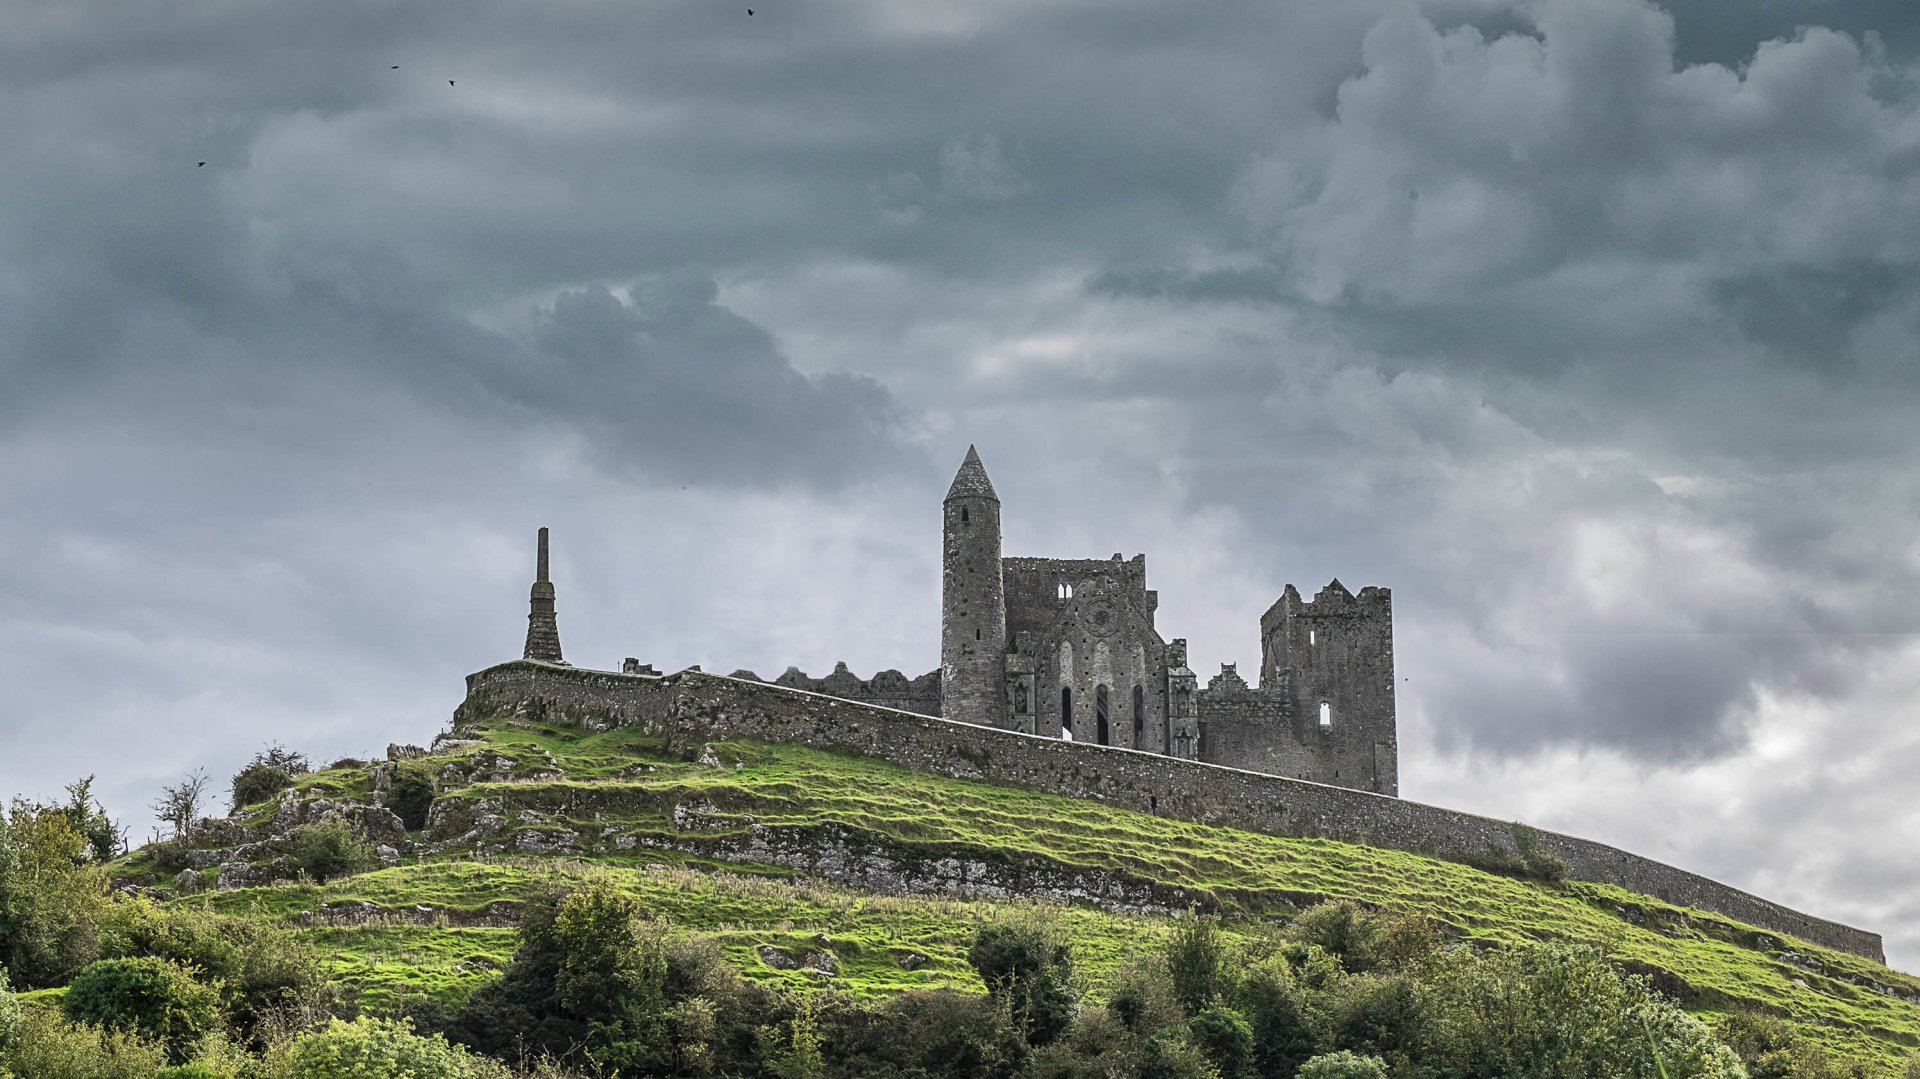 The monumental Rock of Cashel rises above the green Tipperary landscape